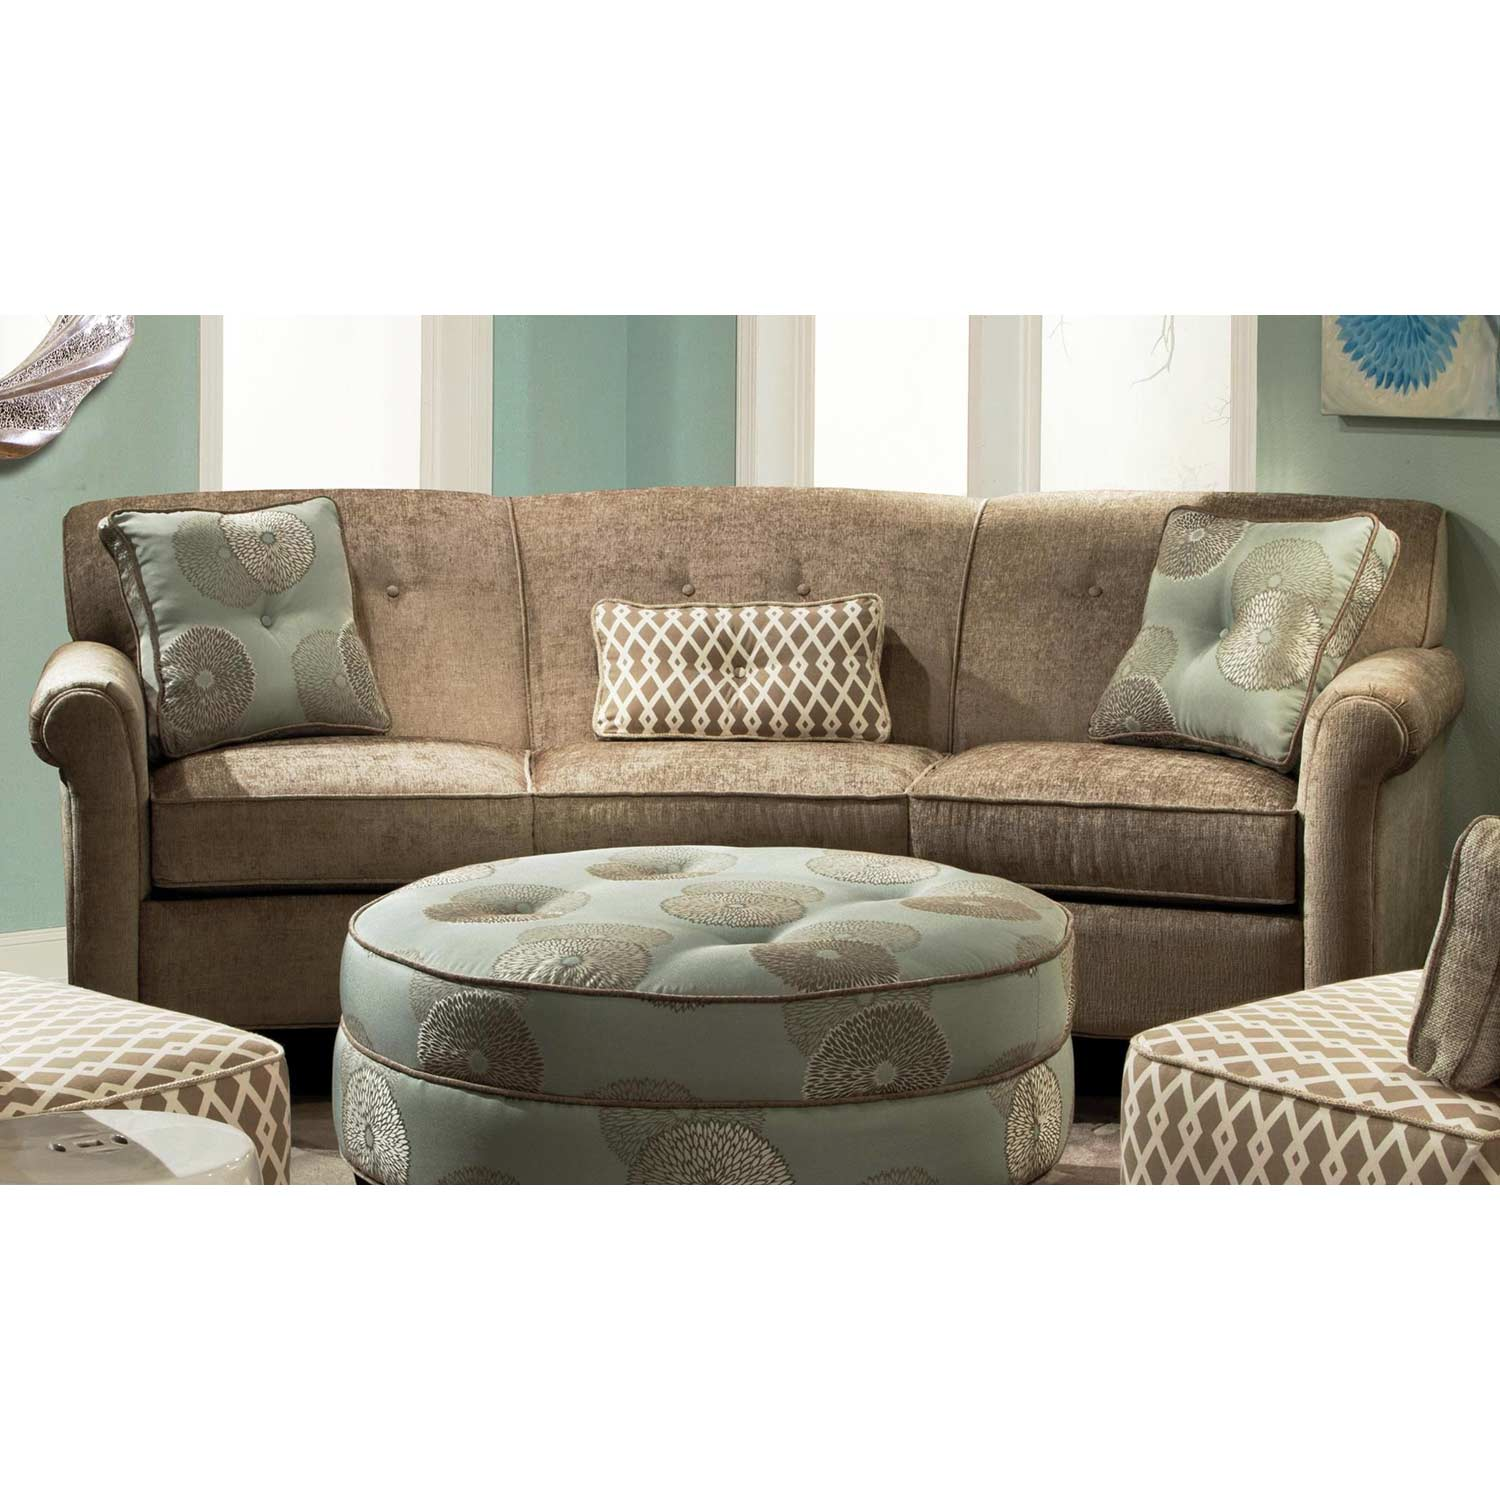 Esse Rolled Arm Fabric Sofa - Buttons, Xanadu Putty - CHF-278000C-371